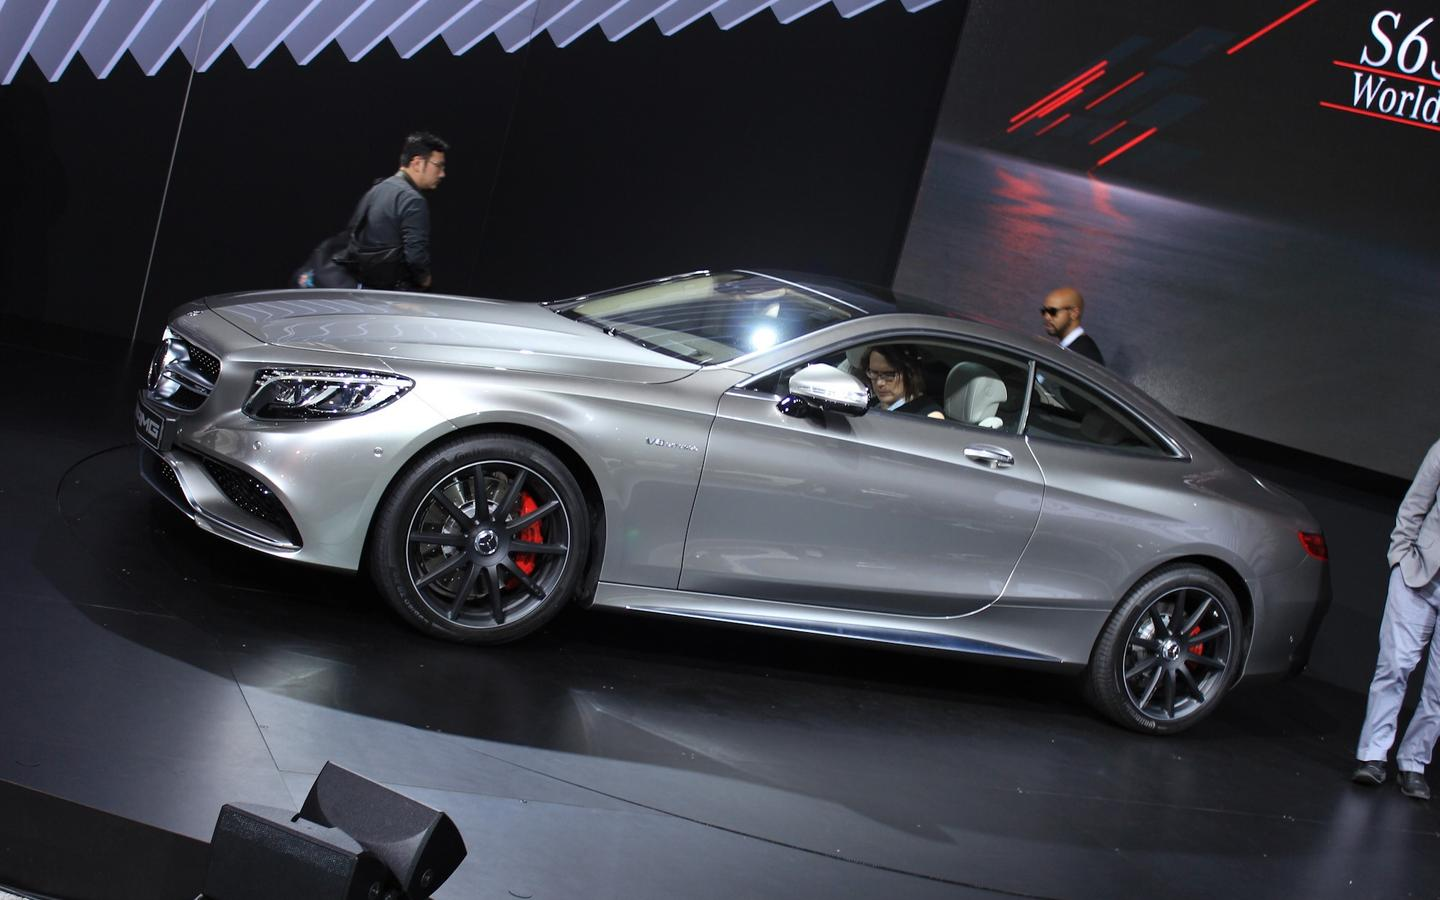 Gray Mercedes Benz S63 Amg Coupe 2015 Wallpaper Download